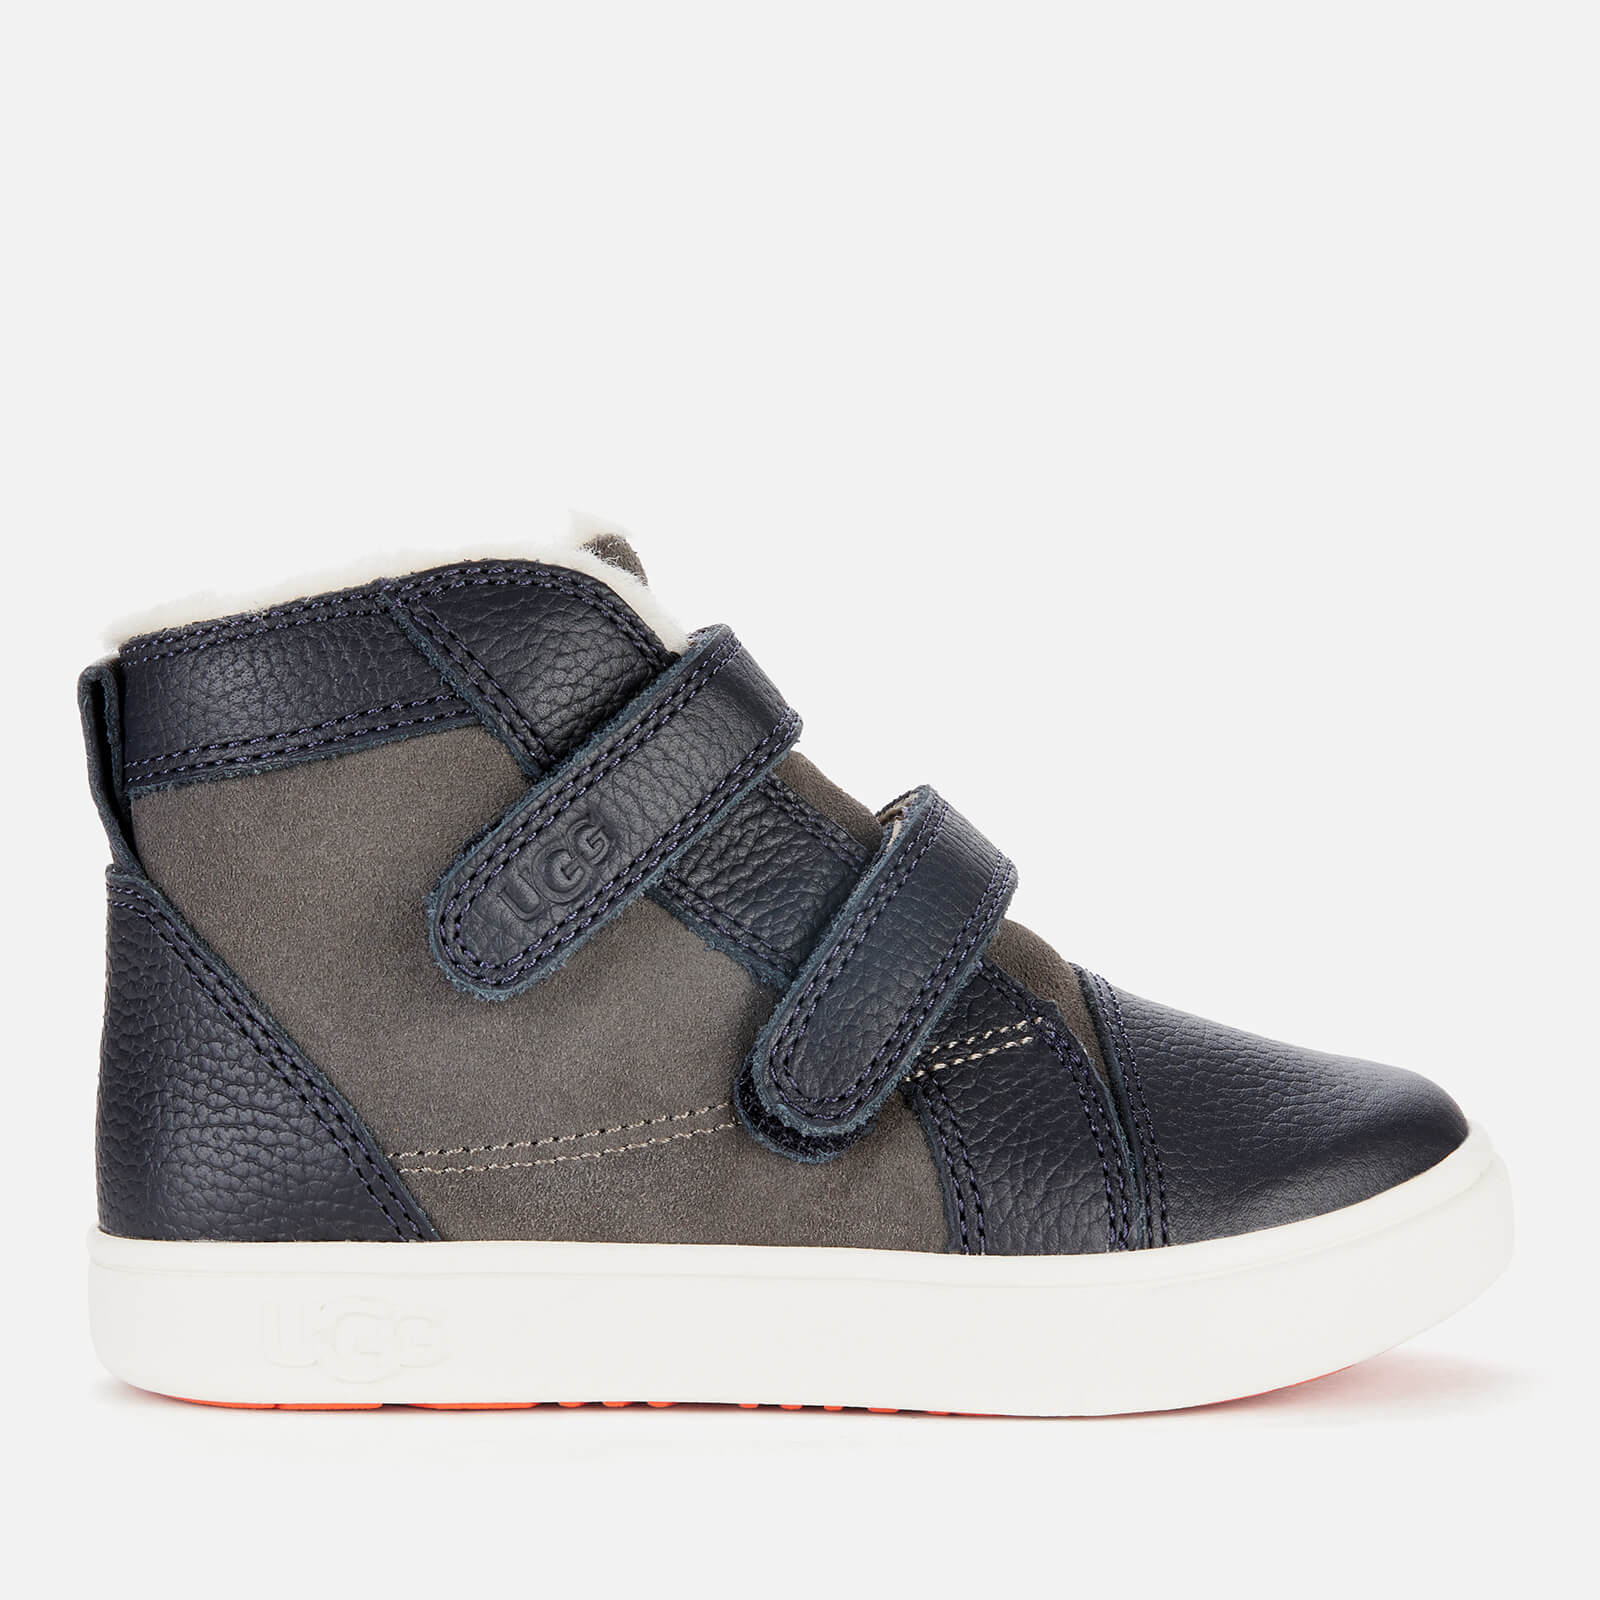 UGG Toddlers' RENNON II Velcro High Top Trainers - Charcoal - UK 5 Toddler